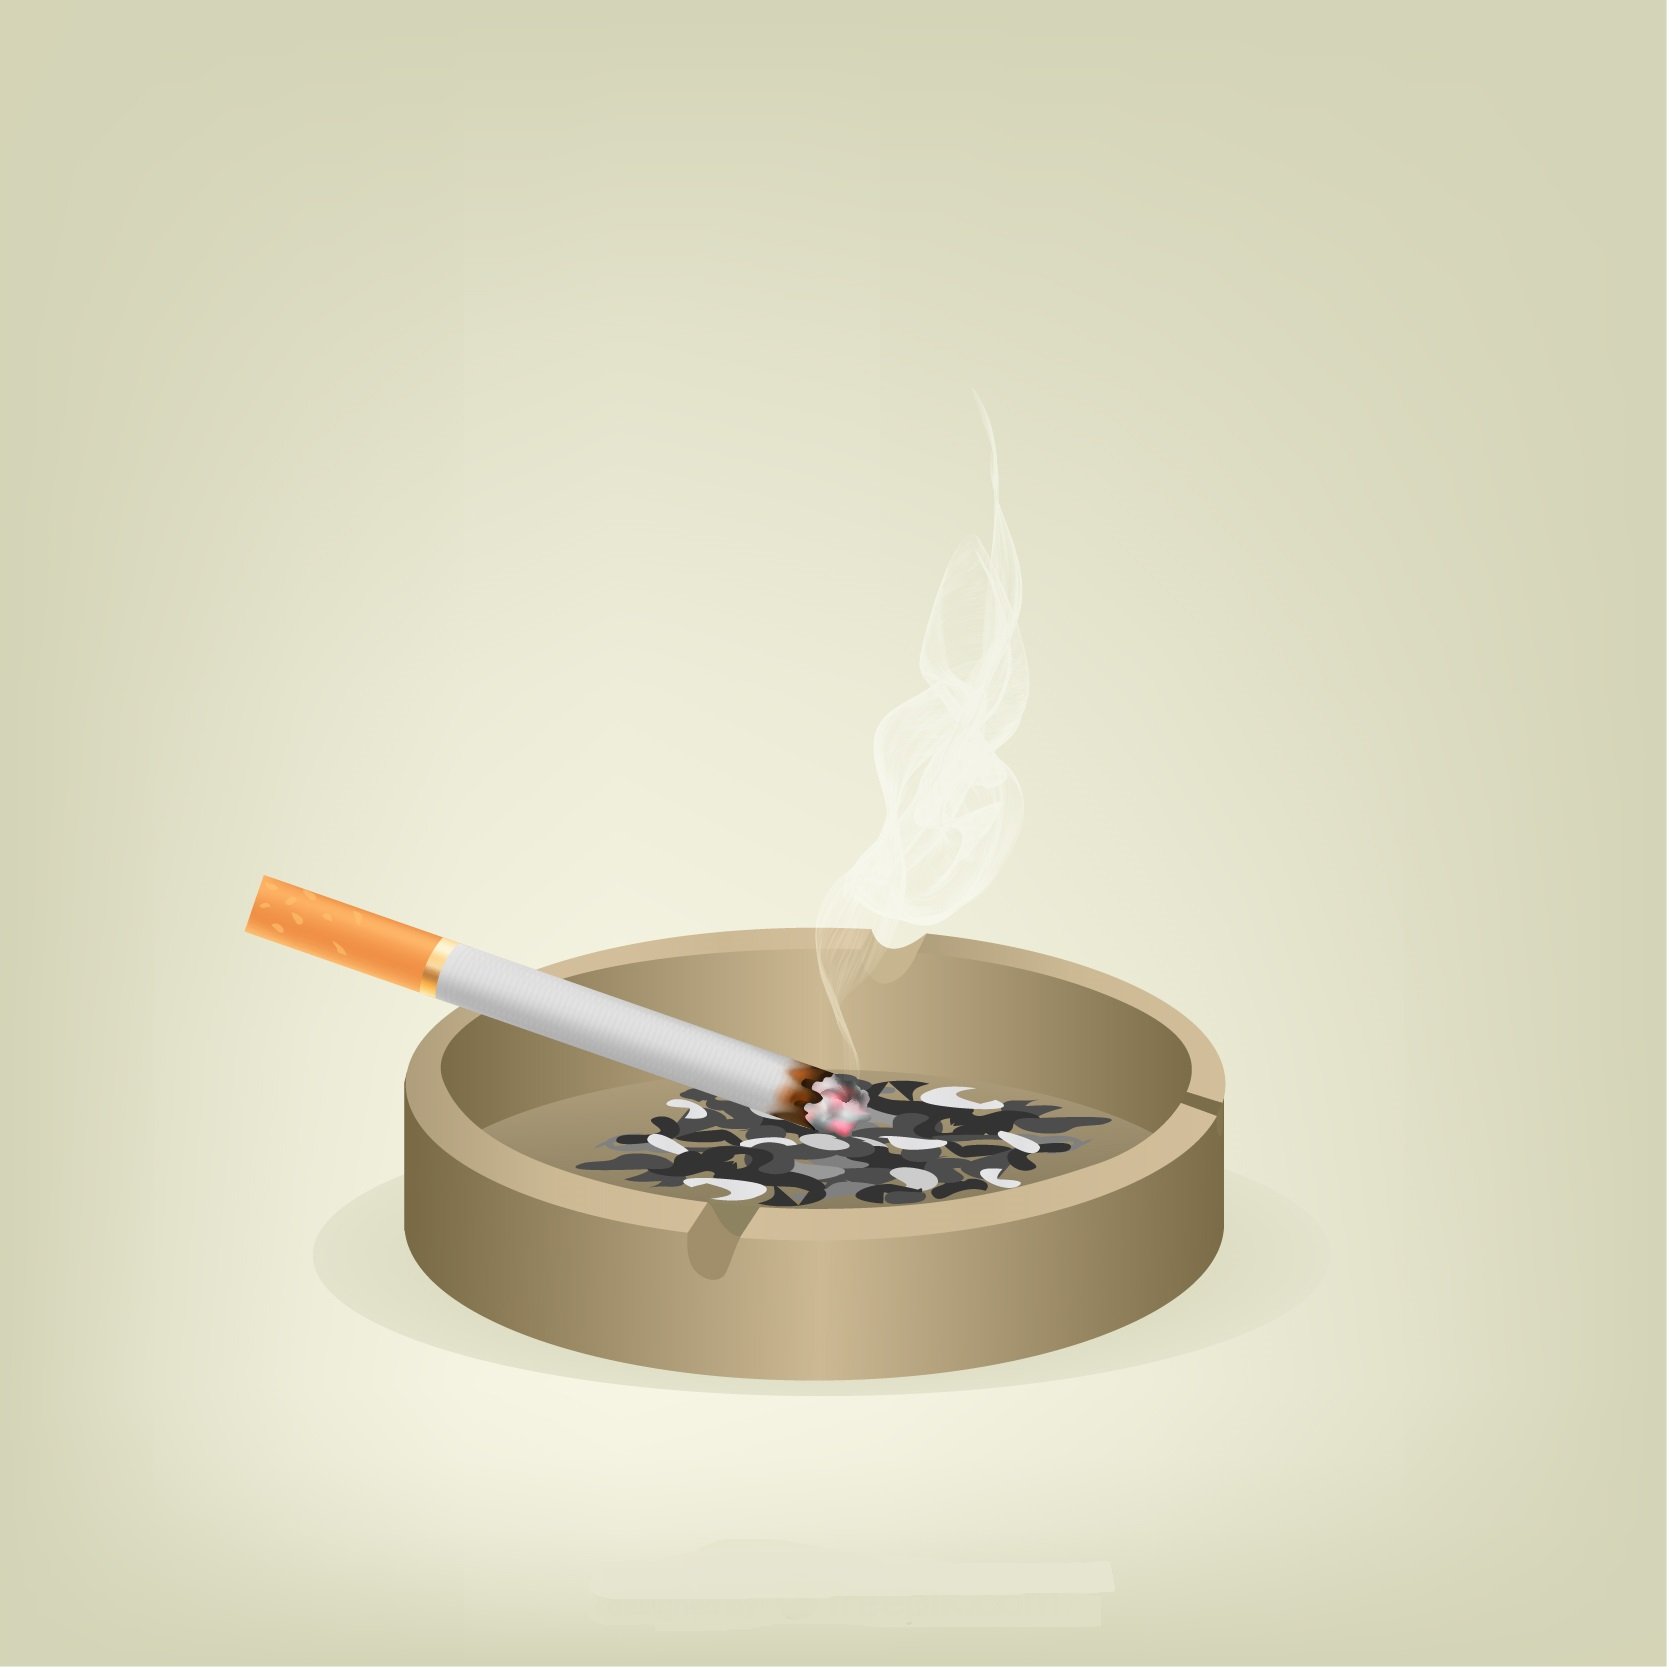 Cigarette butts or filters are pollutants with serious environmental consequences.